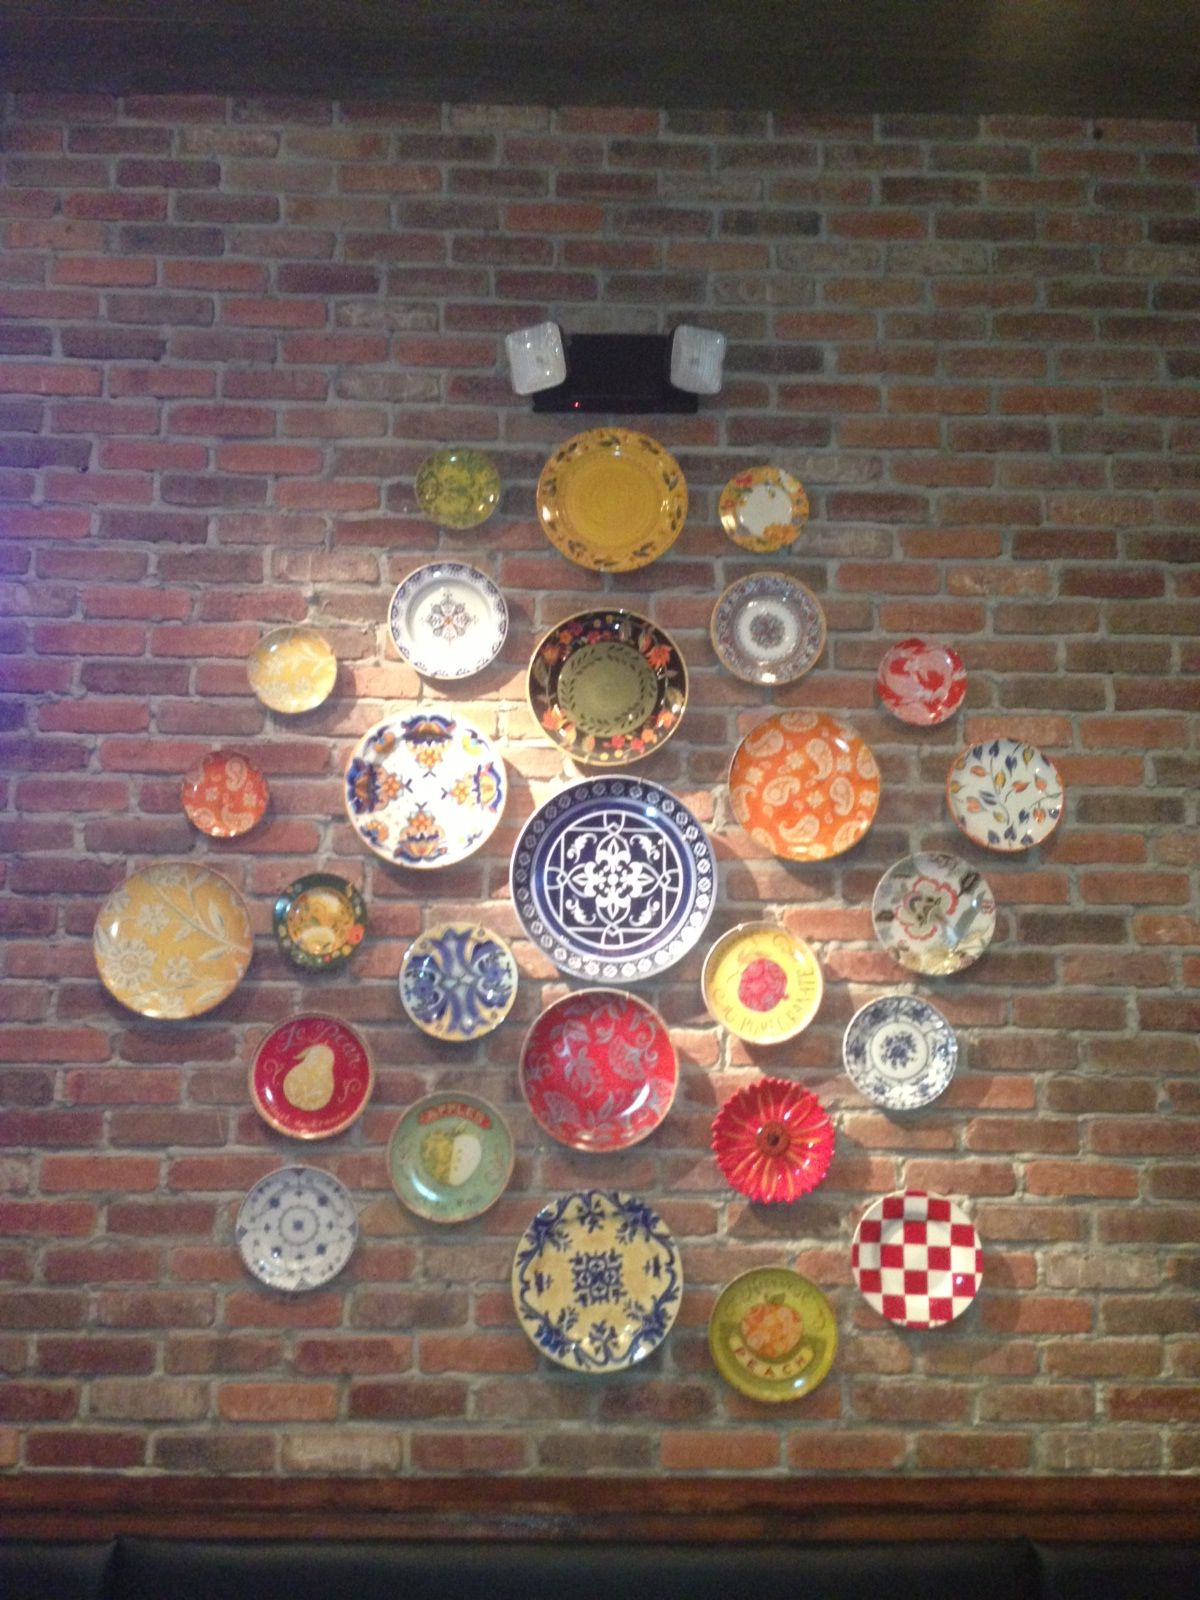 Brick Plate Wall At Salty Sues In Pcb Fl Plates On Wall Plate Decor Decor